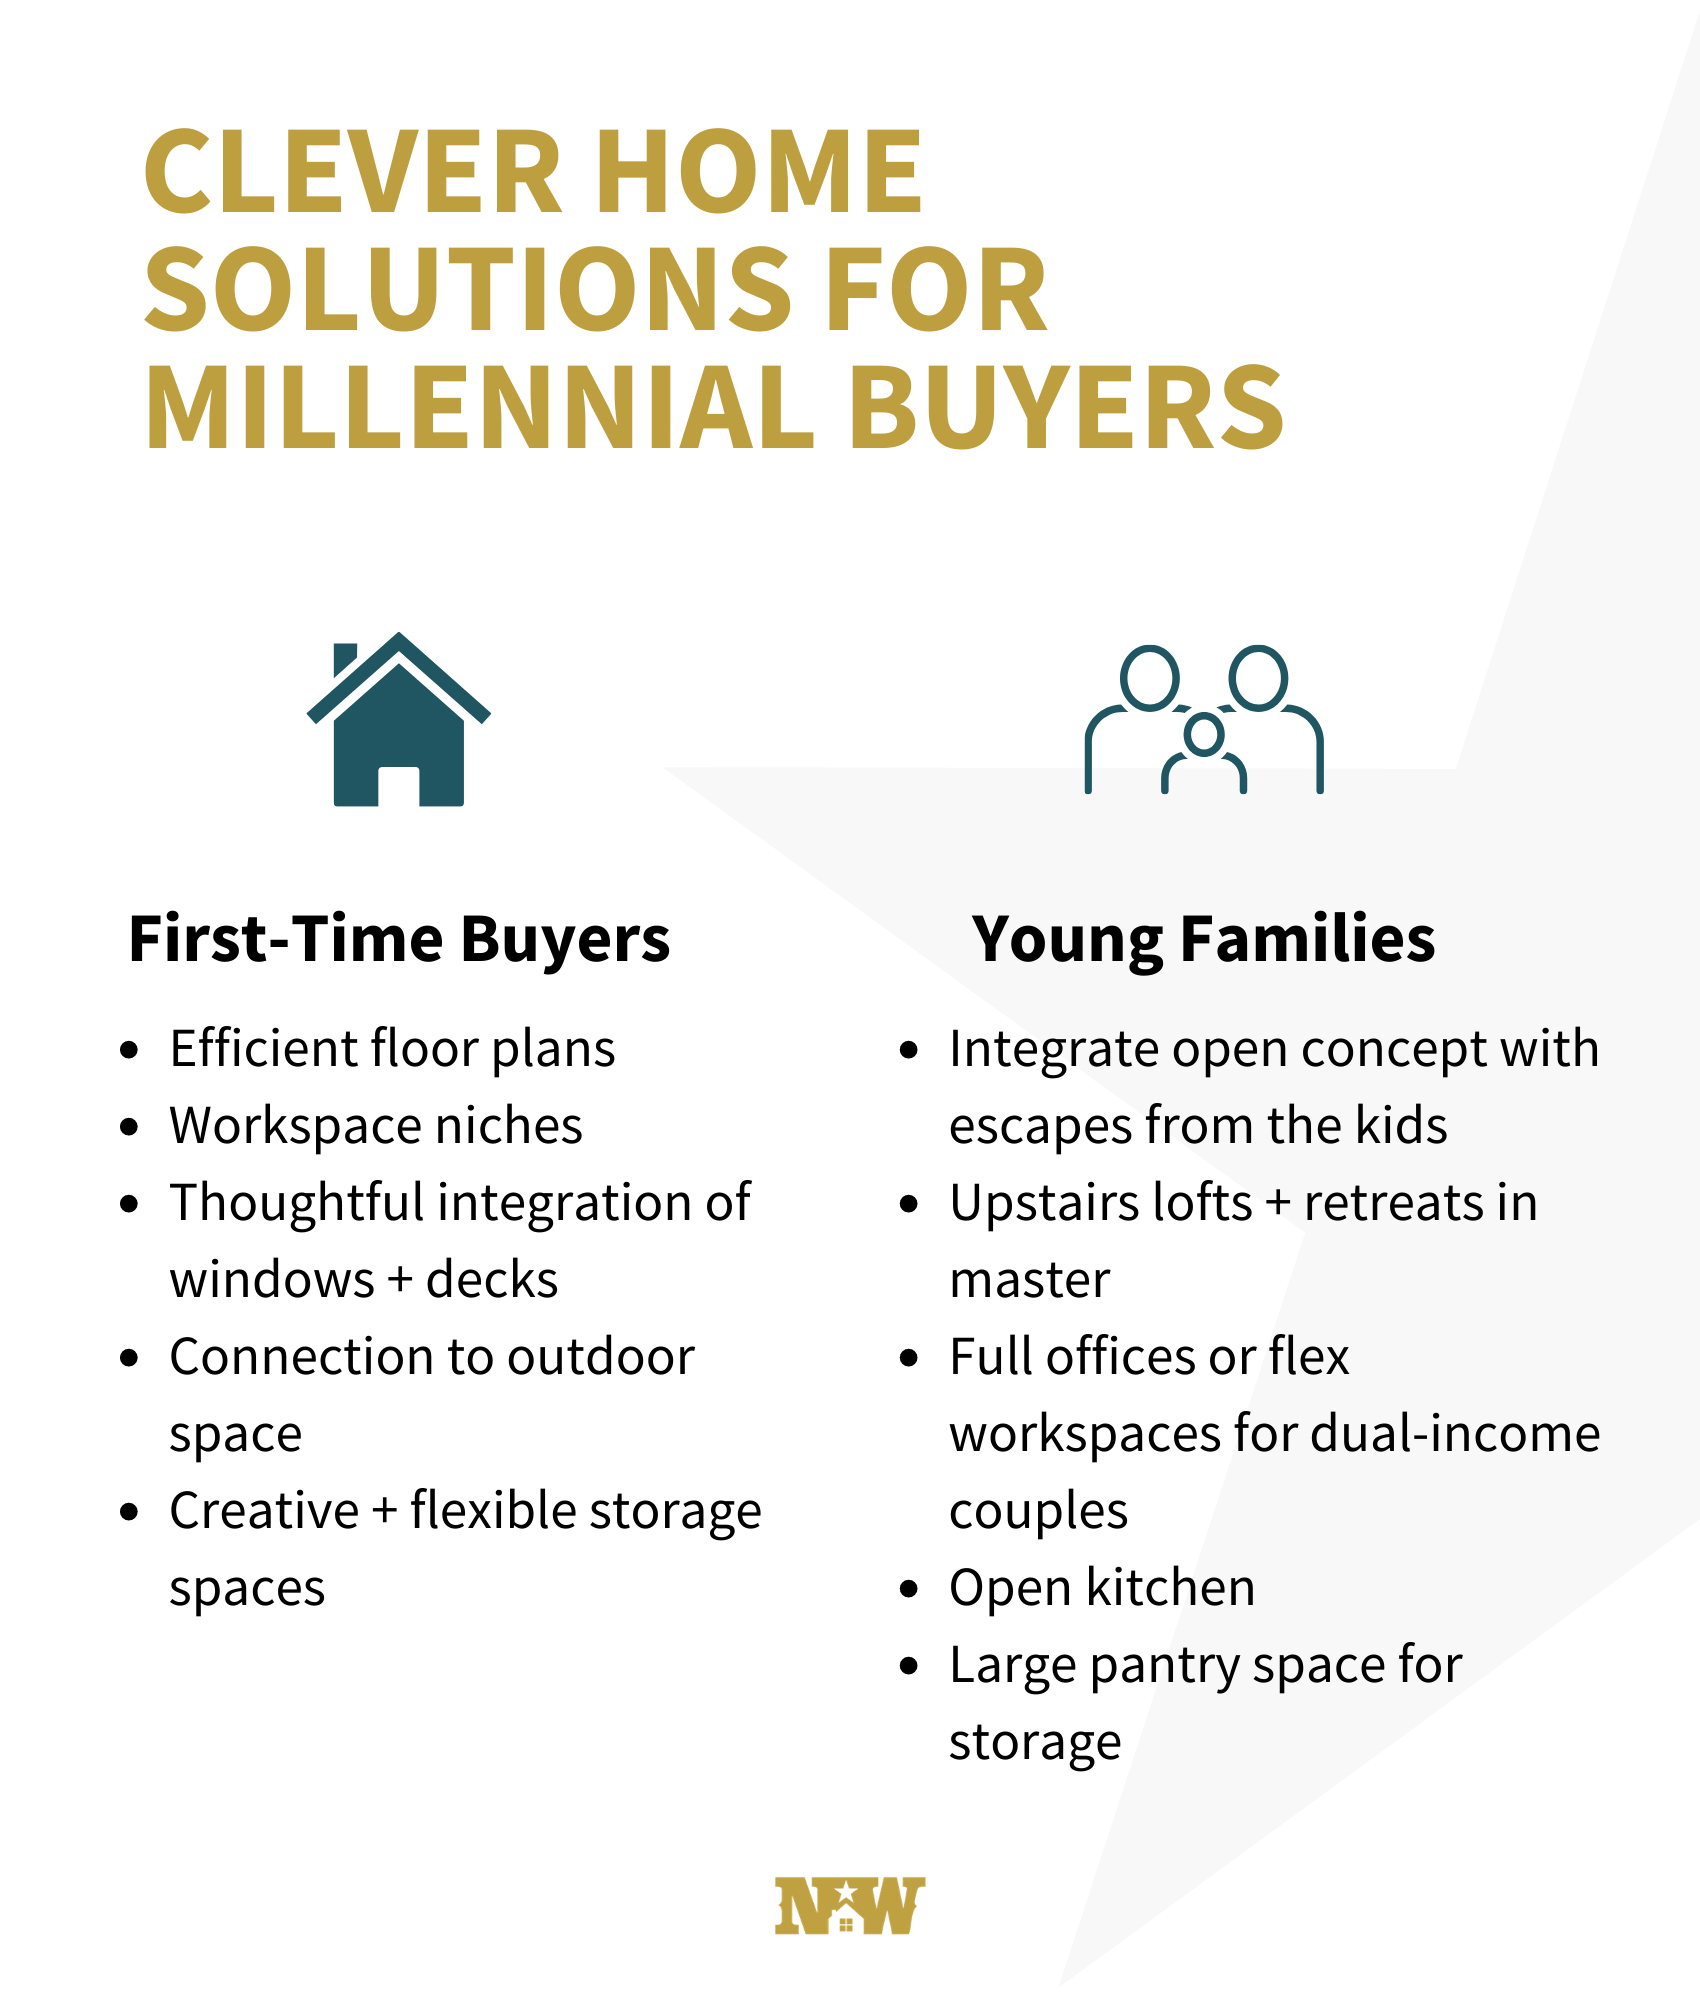 Clever Home Solutions for Millennial Buyers infographic